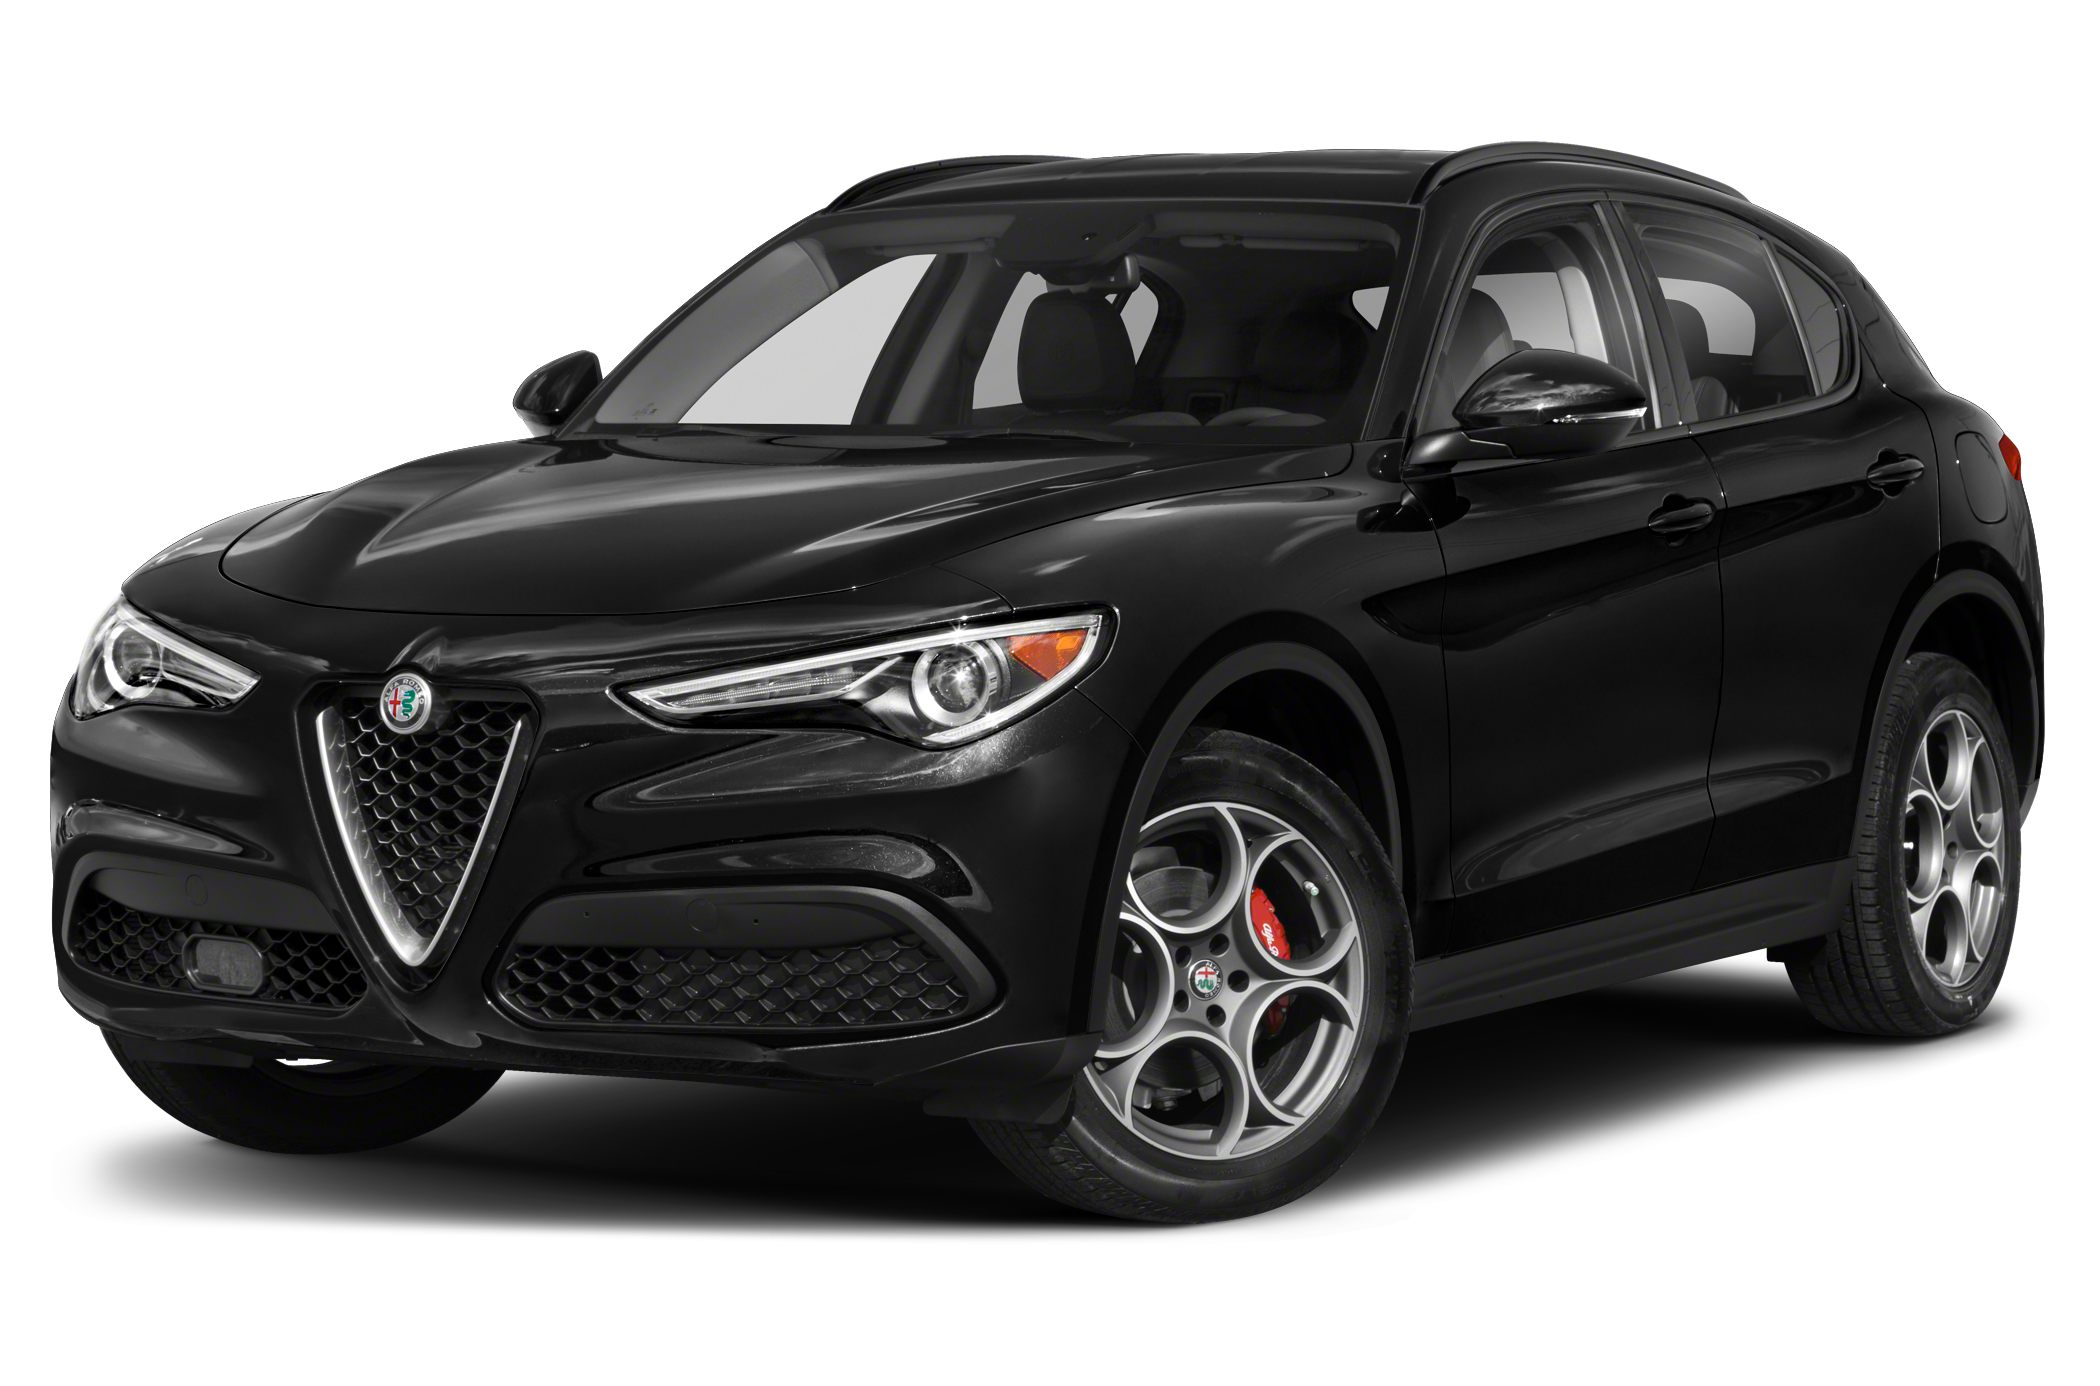 2019 Alfa Romeo Stelvio Specs and Prices